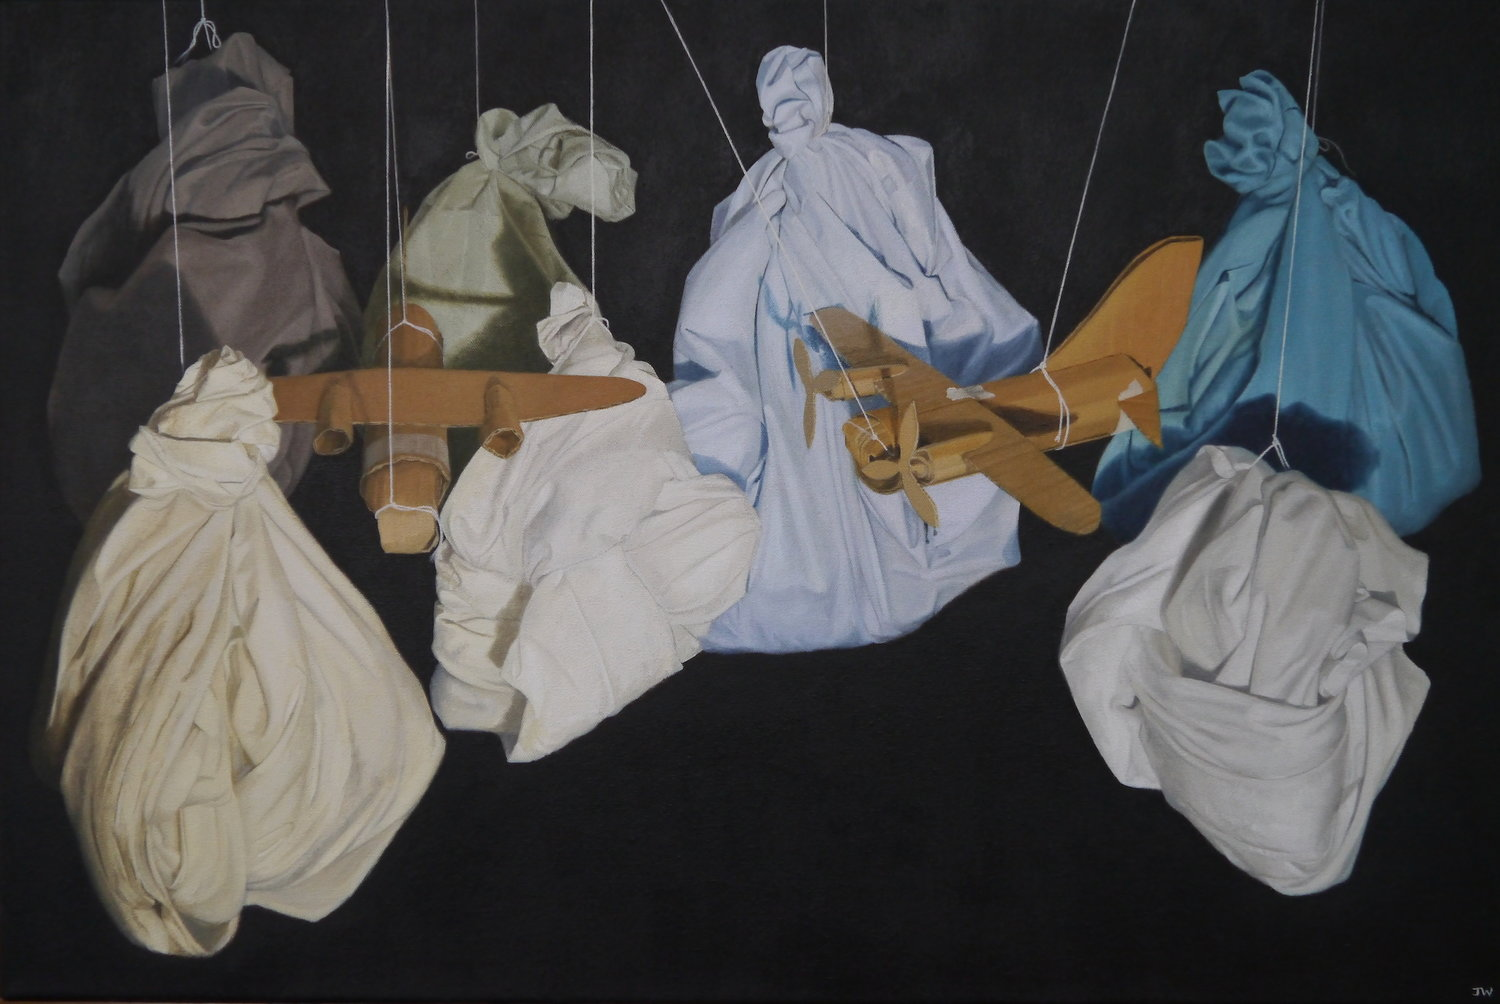 'Left Hanging IV', John Whitehill, Oil on canvas, 75 x 50 x 4 cm